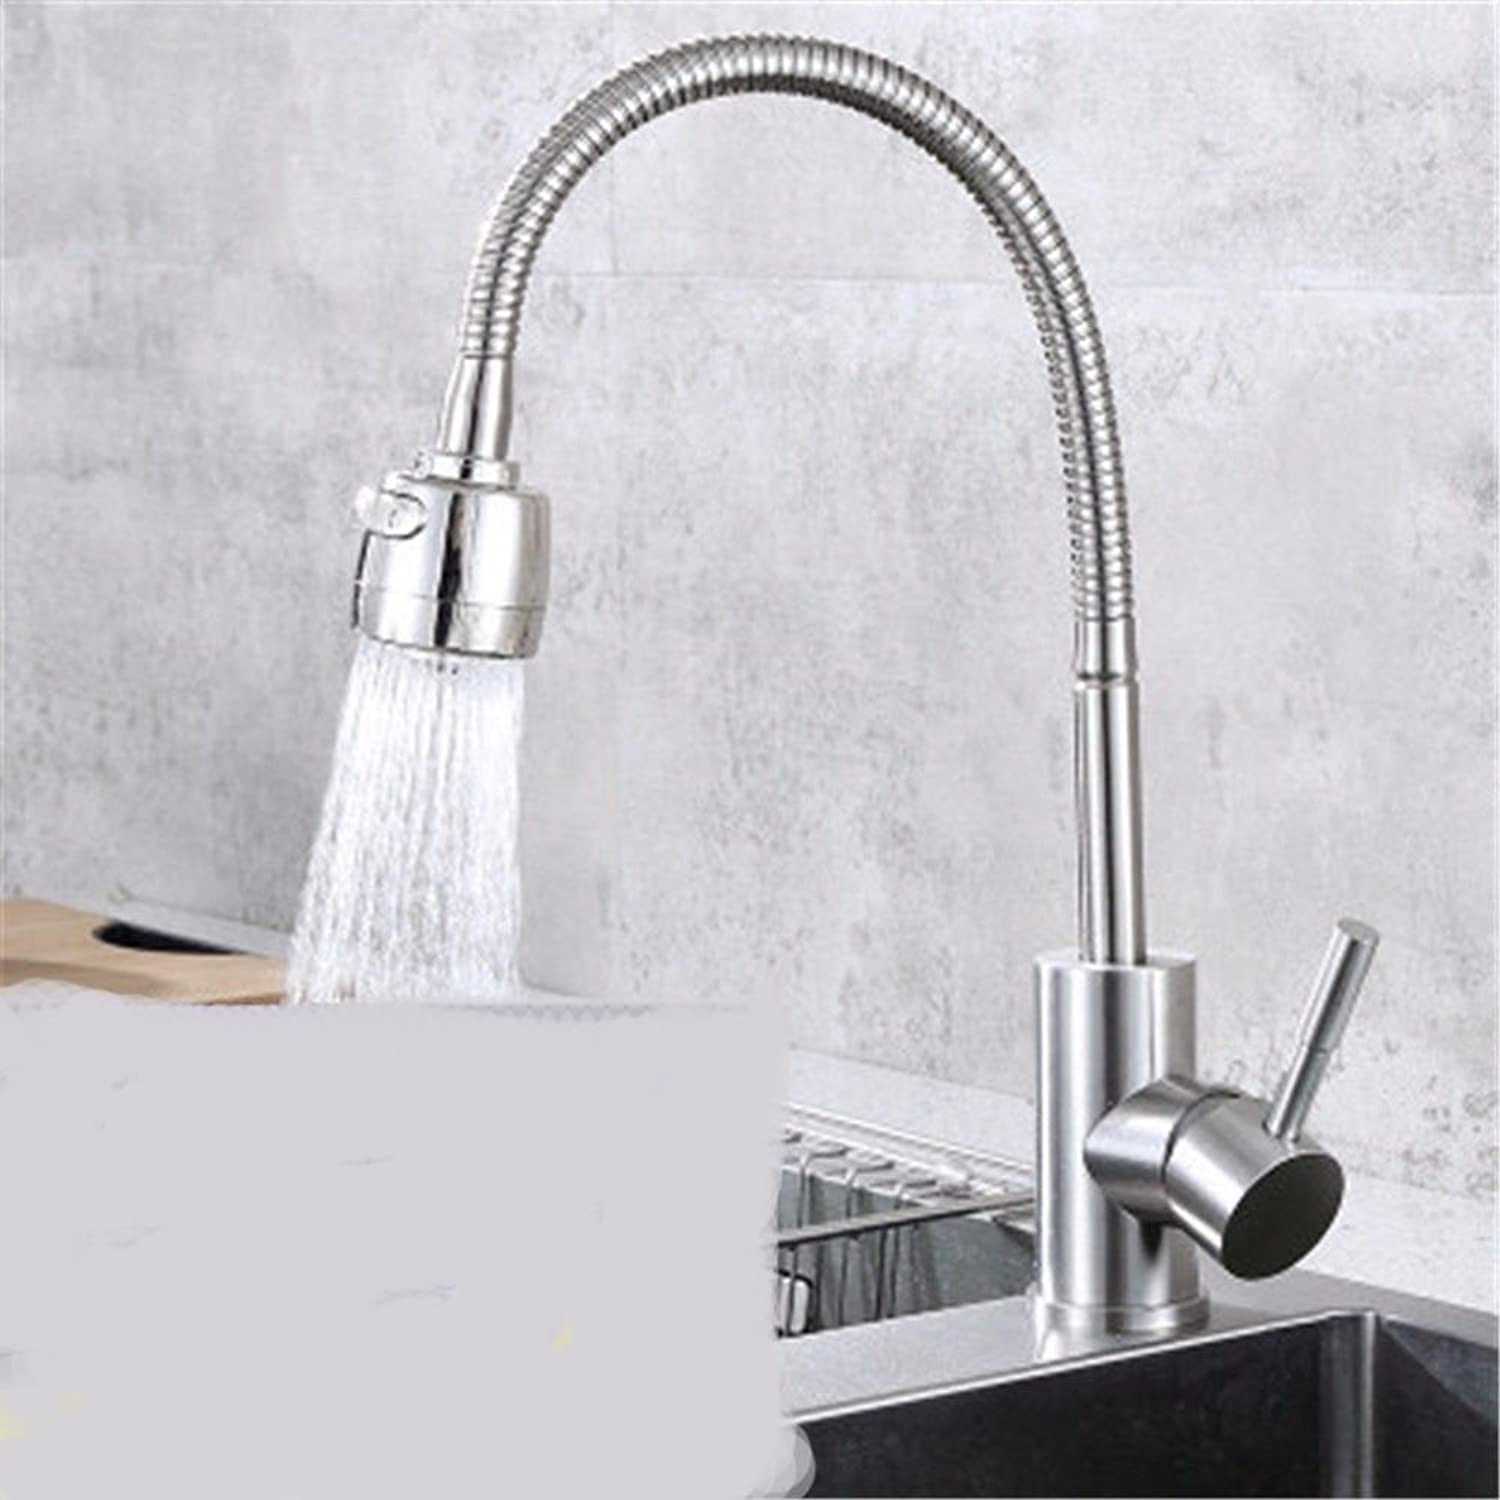 Hlluya Professional Sink Mixer Tap Kitchen Faucet The tap 304 stainless steel hot and cold dish washing basin single faucet swivel sitting in line,F